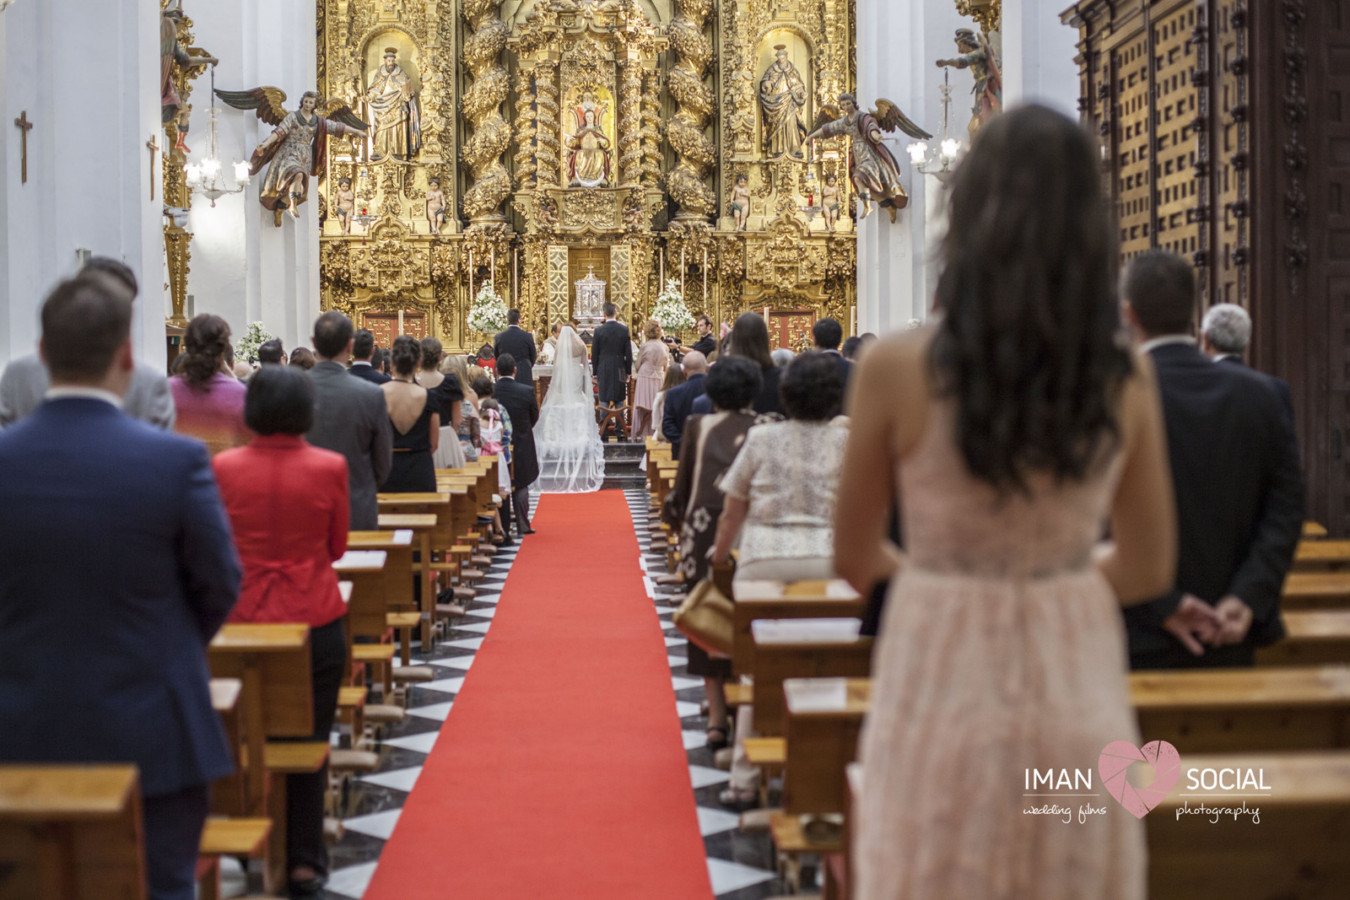 MG_8153 Juan Antonio y Mónica - video boda cordoba